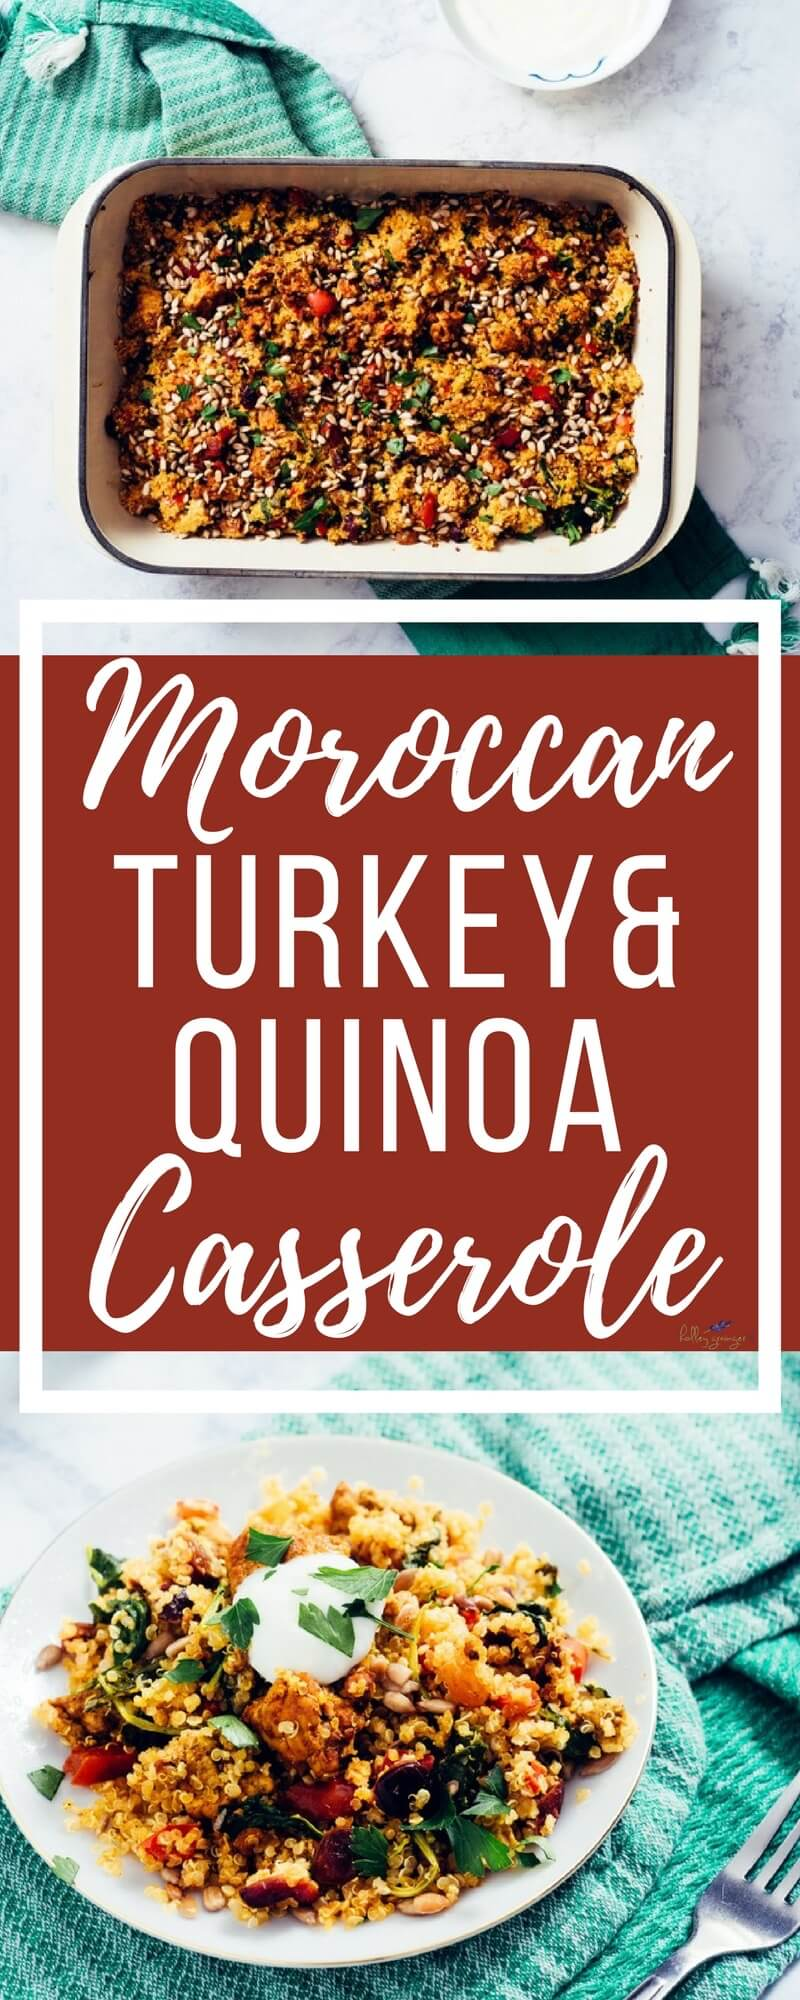 Looking for a simple, family-approved dinner idea that has all 5 recommended food groups and still tastes amazing? Moroccan Turkey and Quinoa Casserole has you covered.